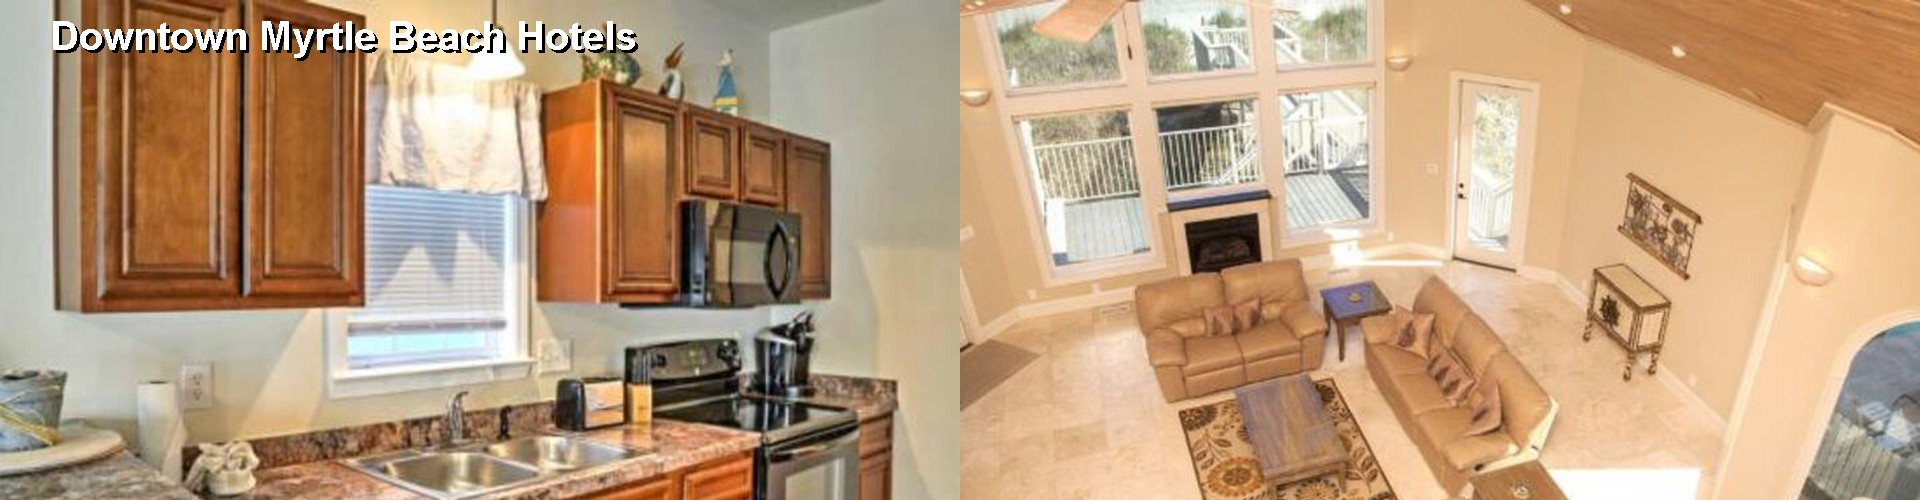 5 Best Hotels near Downtown Myrtle Beach